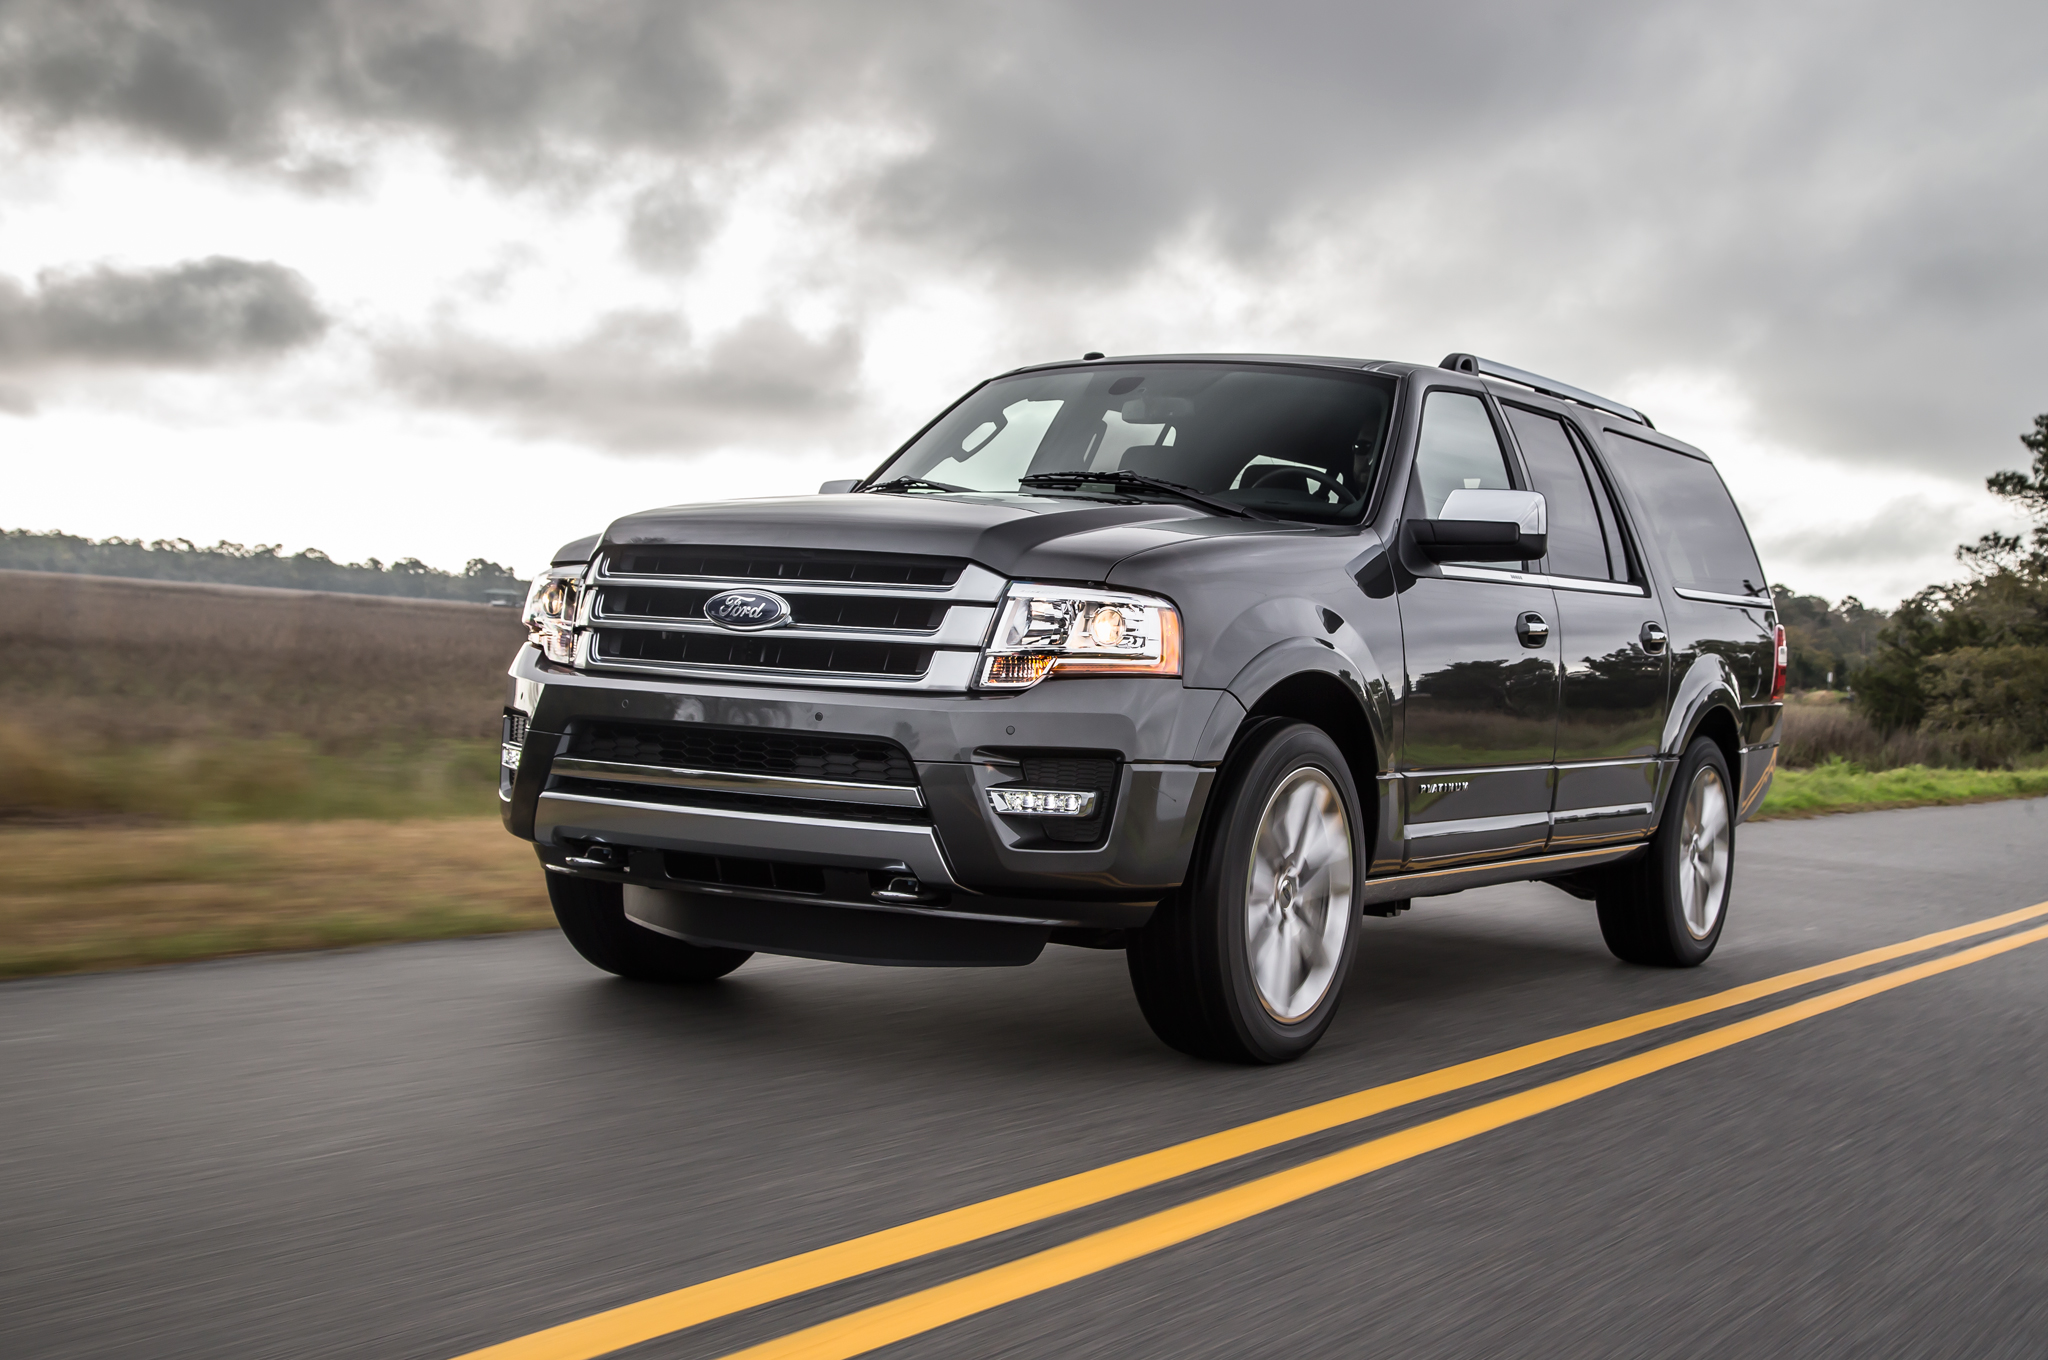 2015 Ford Expedition Performance